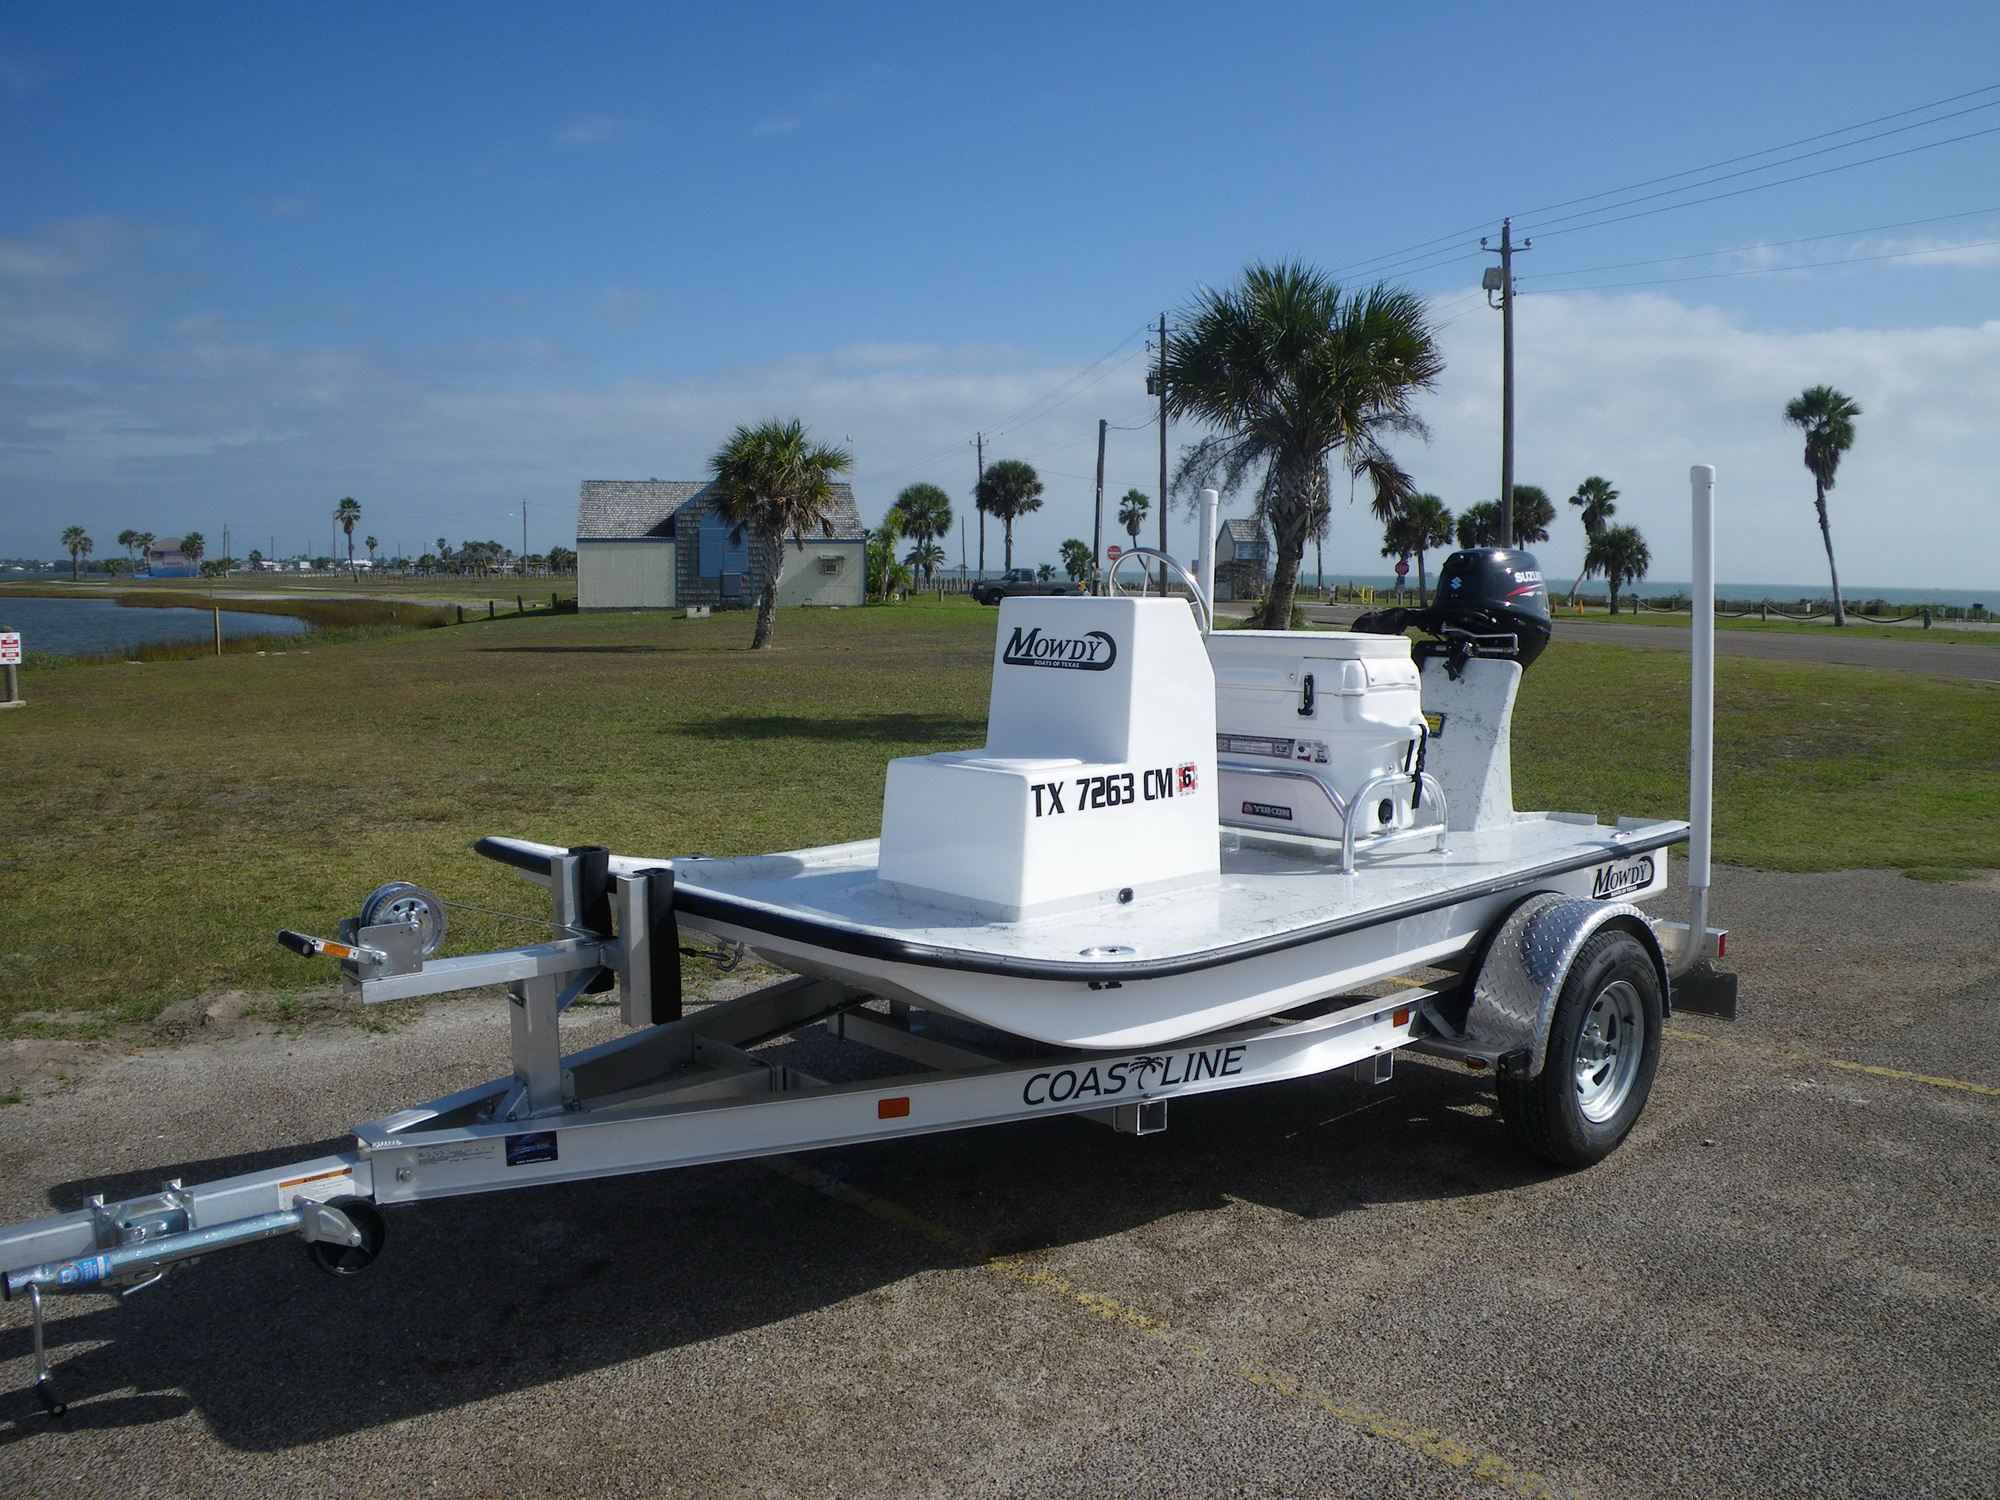 Texas Sled | Skiff Life - Fishing & Boating Articles, Classifieds, Photos and Video